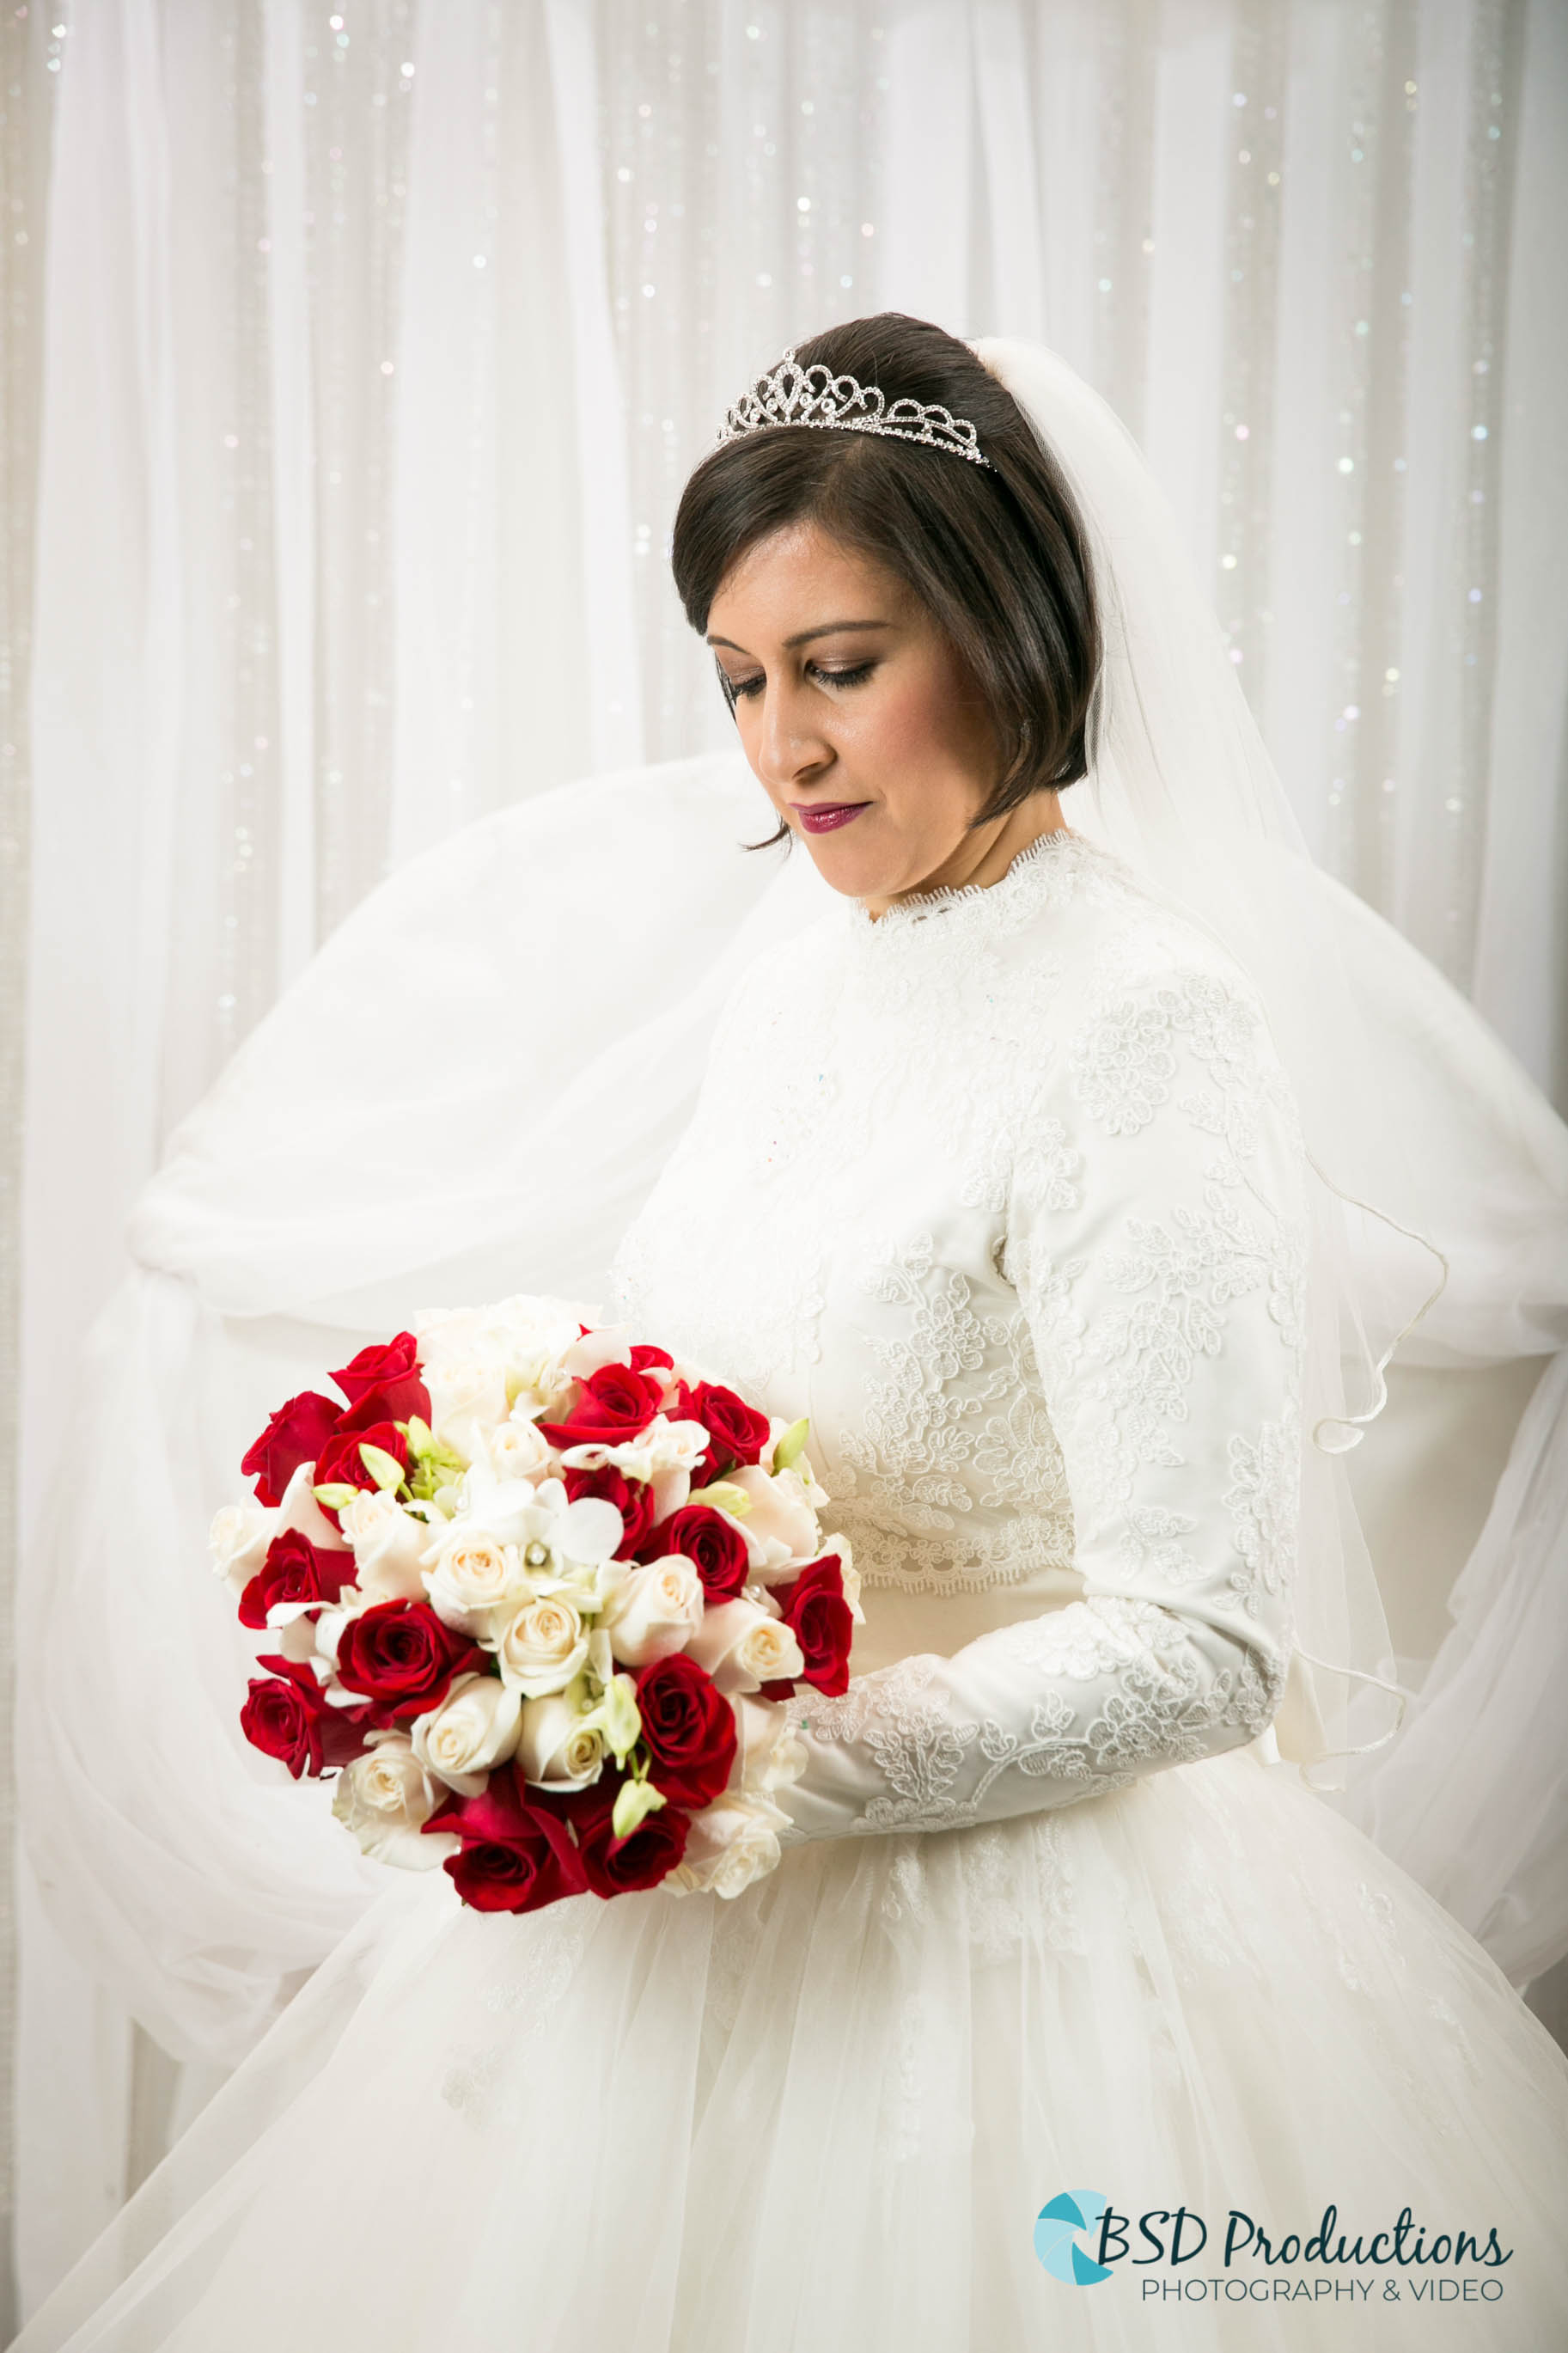 UH5A2347 Wedding – BSD Productions Photography